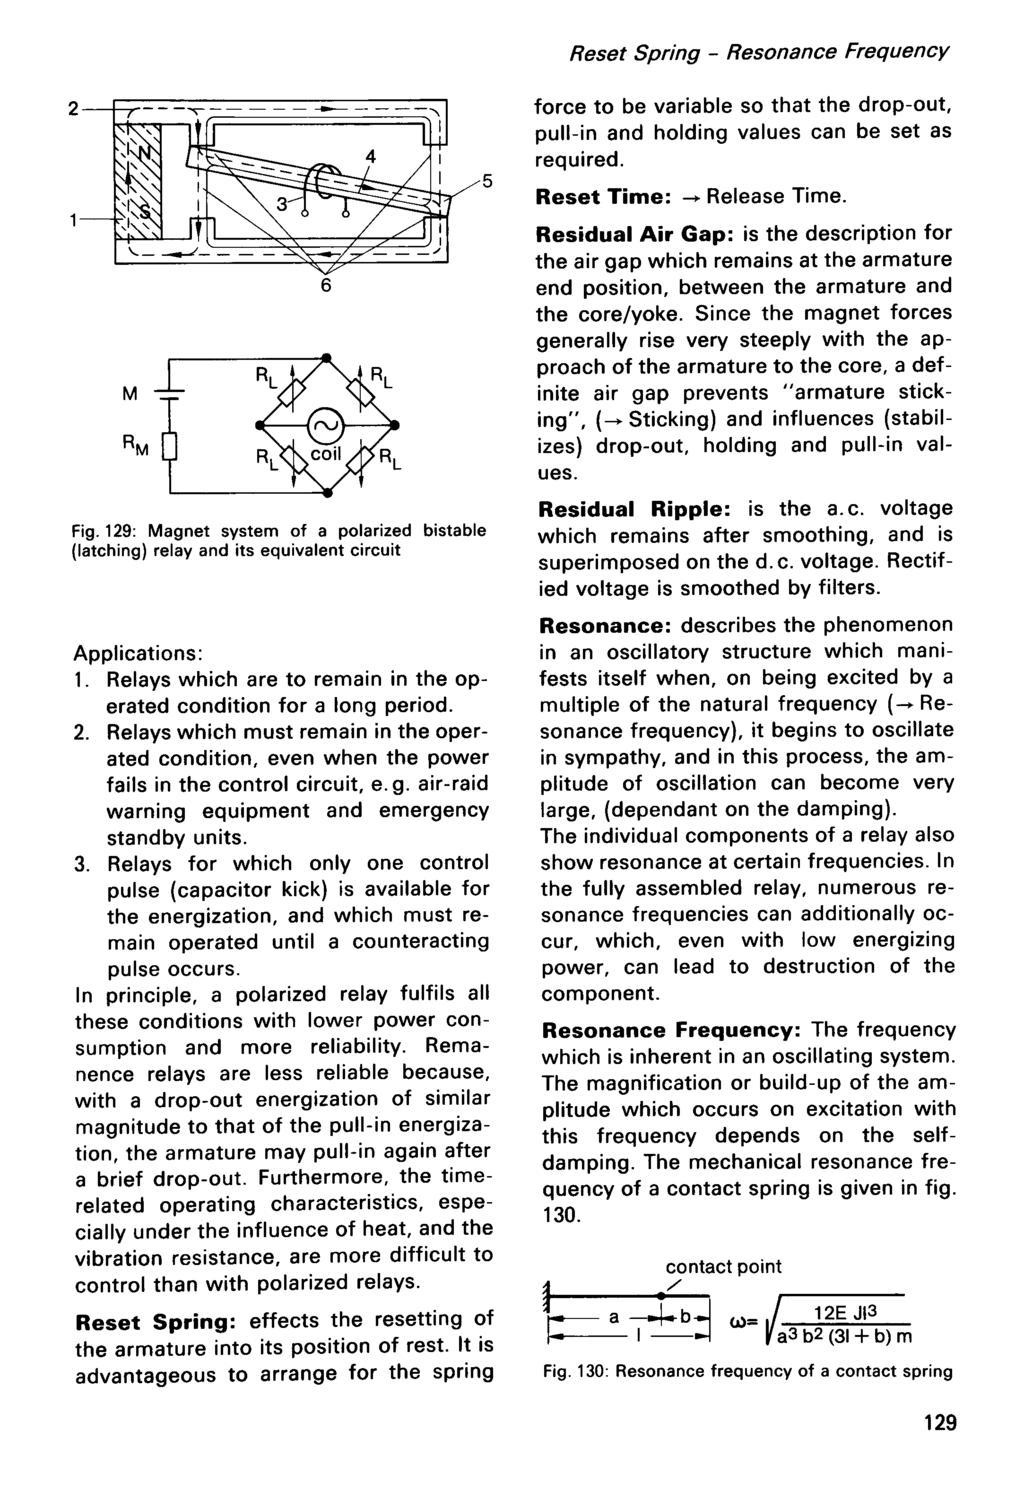 Hans Sauer Modern Re La Y Technology Pdf Relay Bistable Circuit Reset Spring Resonance Frequency Fig 129 Magnet System Of A Polarized